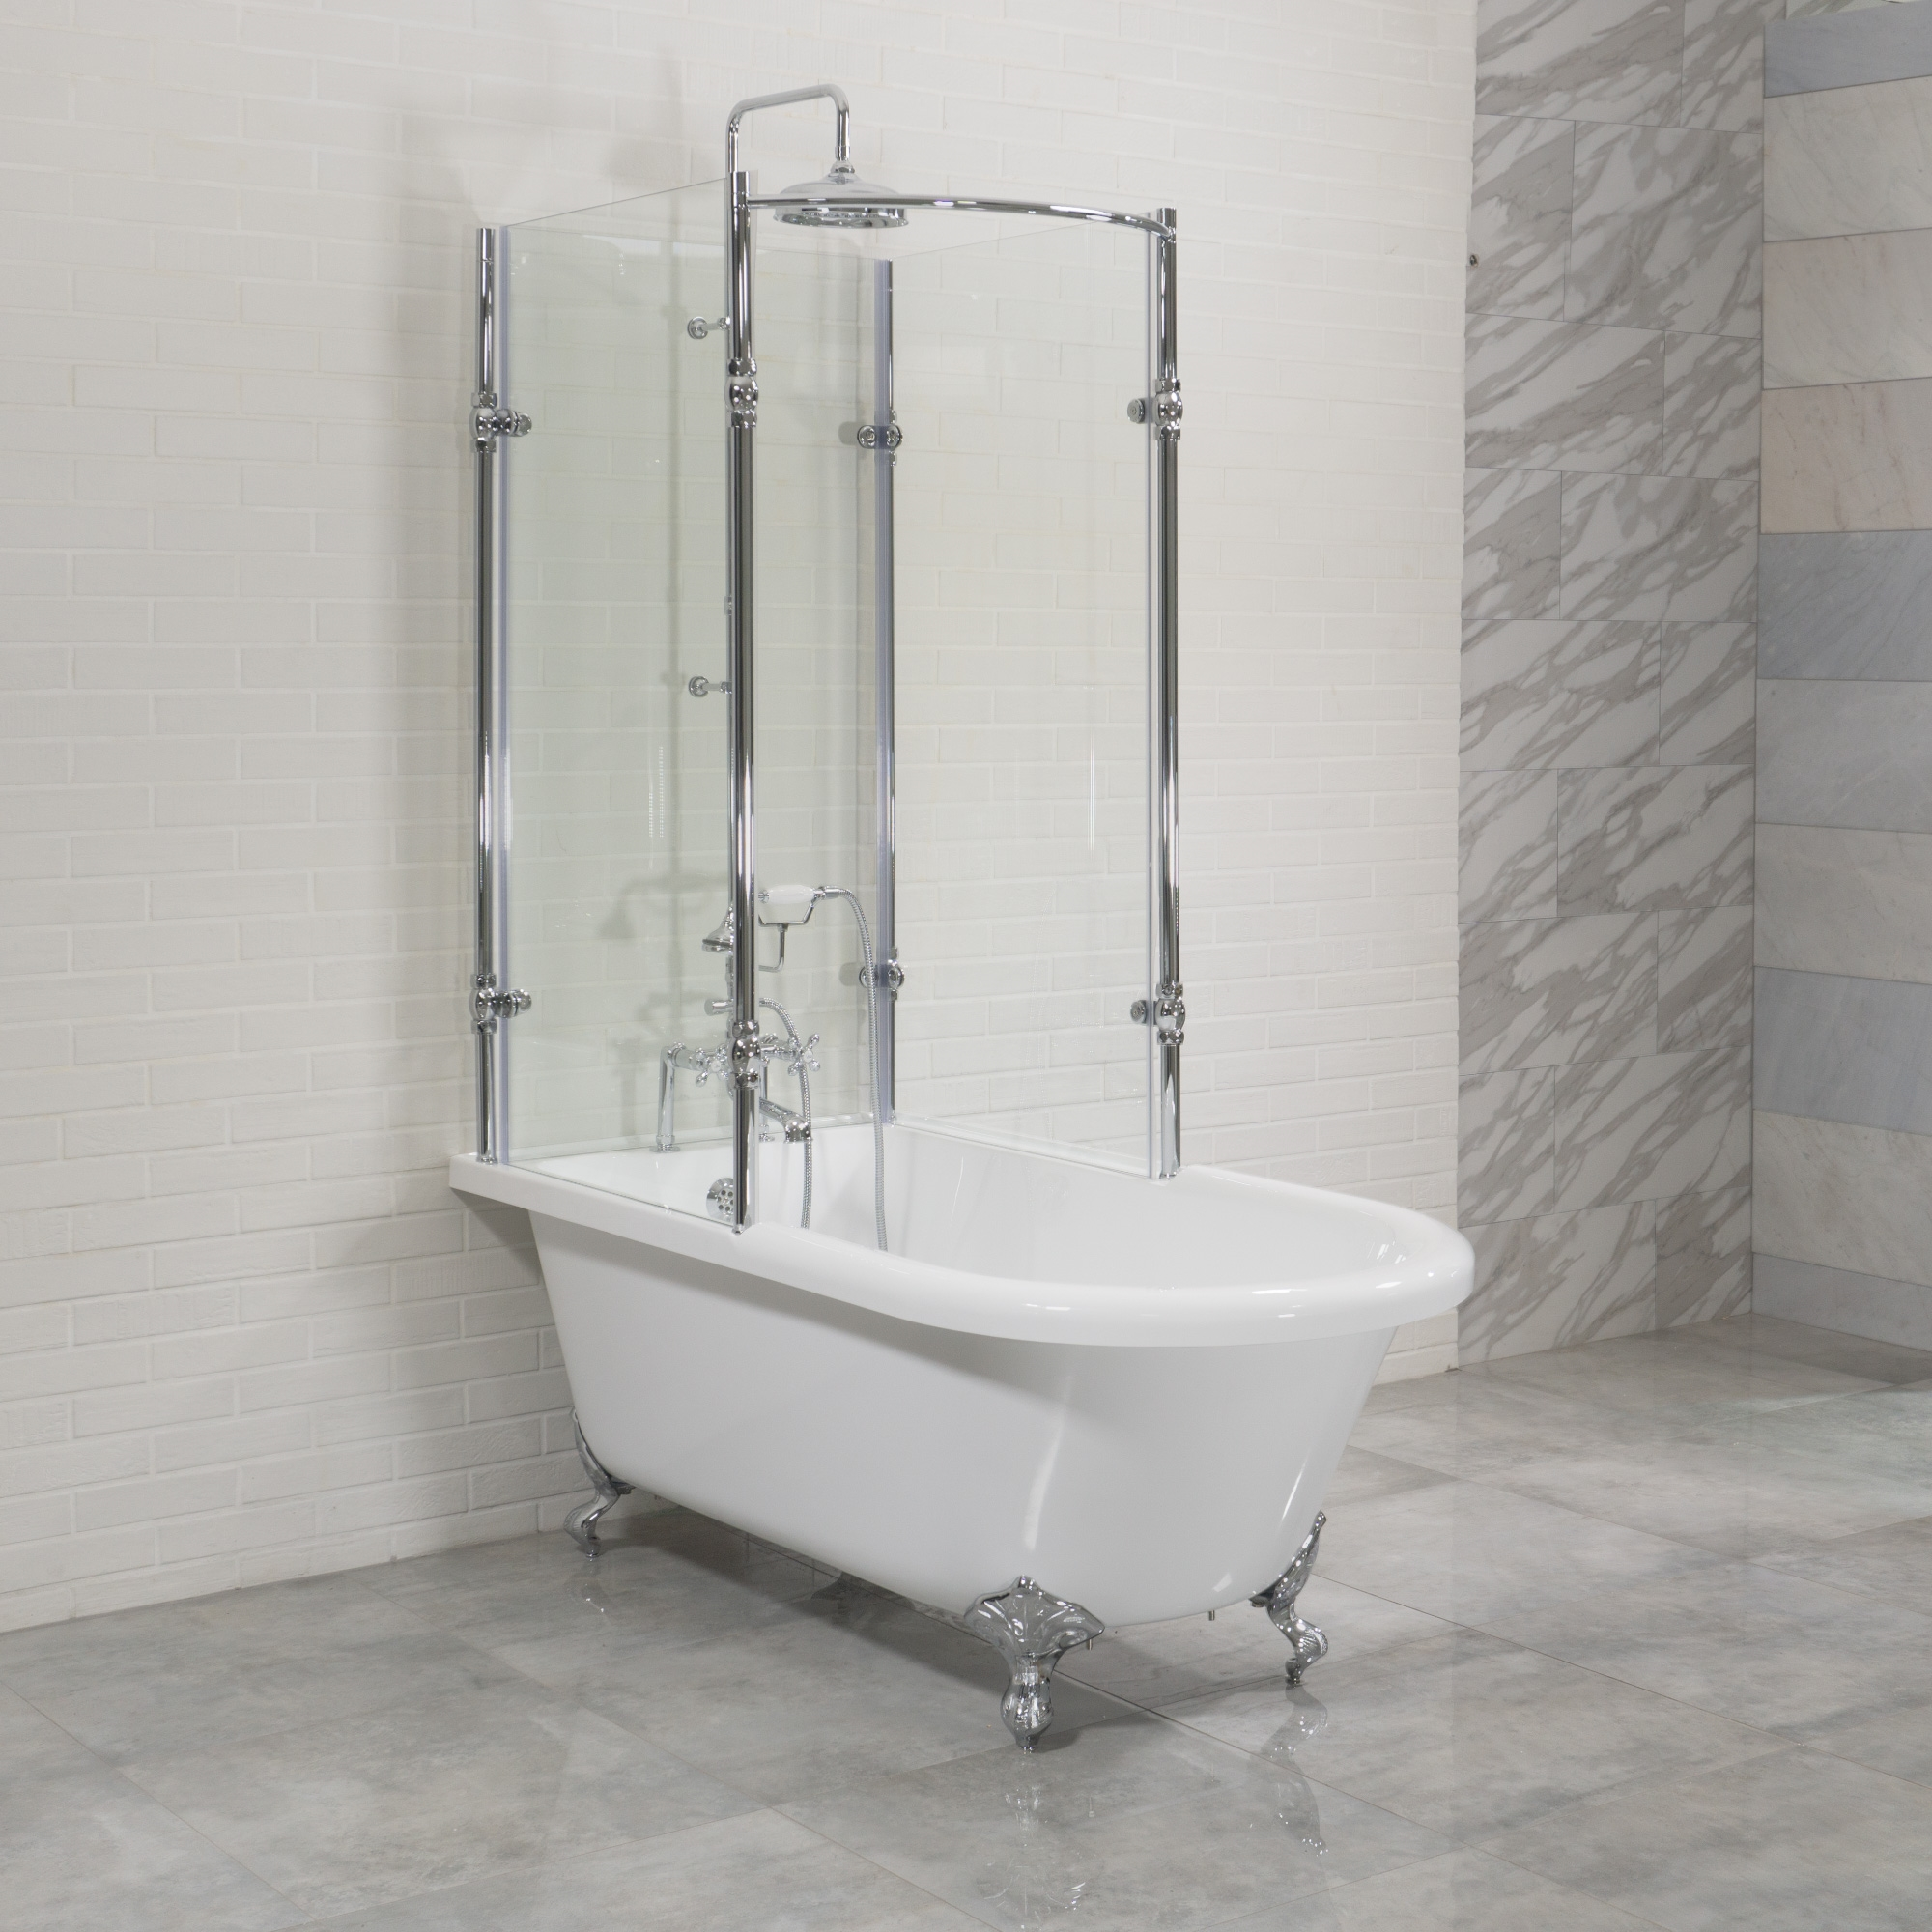 Clawfoot Tub Shower Surround.Oasis 59 Shpk 59 Extra Wide Classic Clawfoot Shower Tub With Frosted Or Clear Tempered Glass Shower Enclosure Package